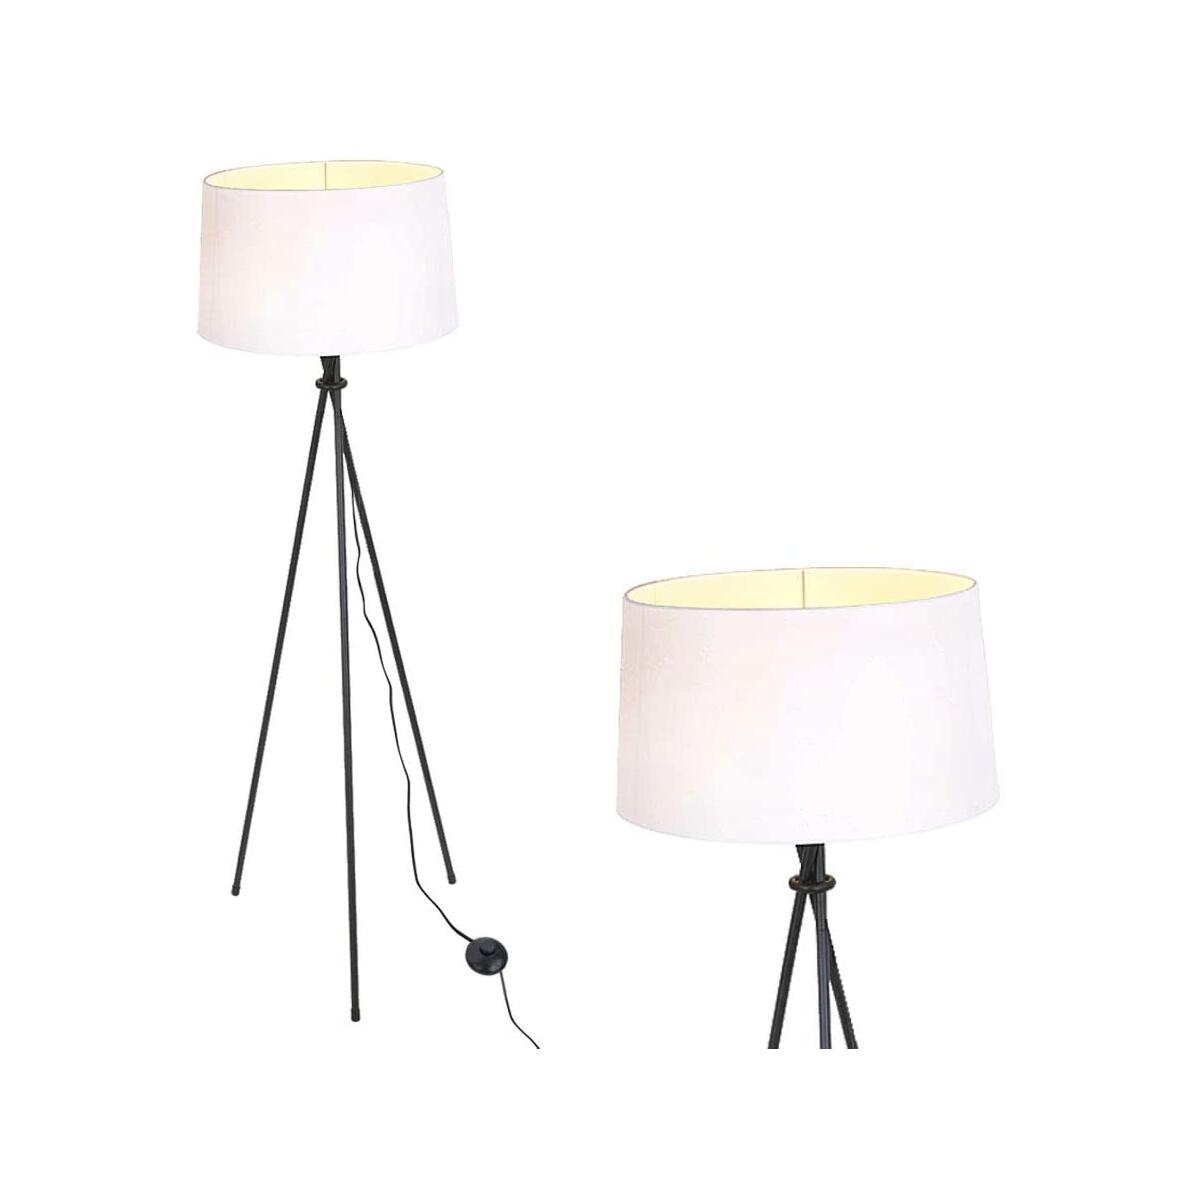 KARMIQI Modern Tripod Floor Lamp, Tall Farmhouse Standing Lamp with Drum Lamp Shade, Contemporary Floor Reading Lamp for Bedrooms Living Rooms Office(LED Bulb Included)